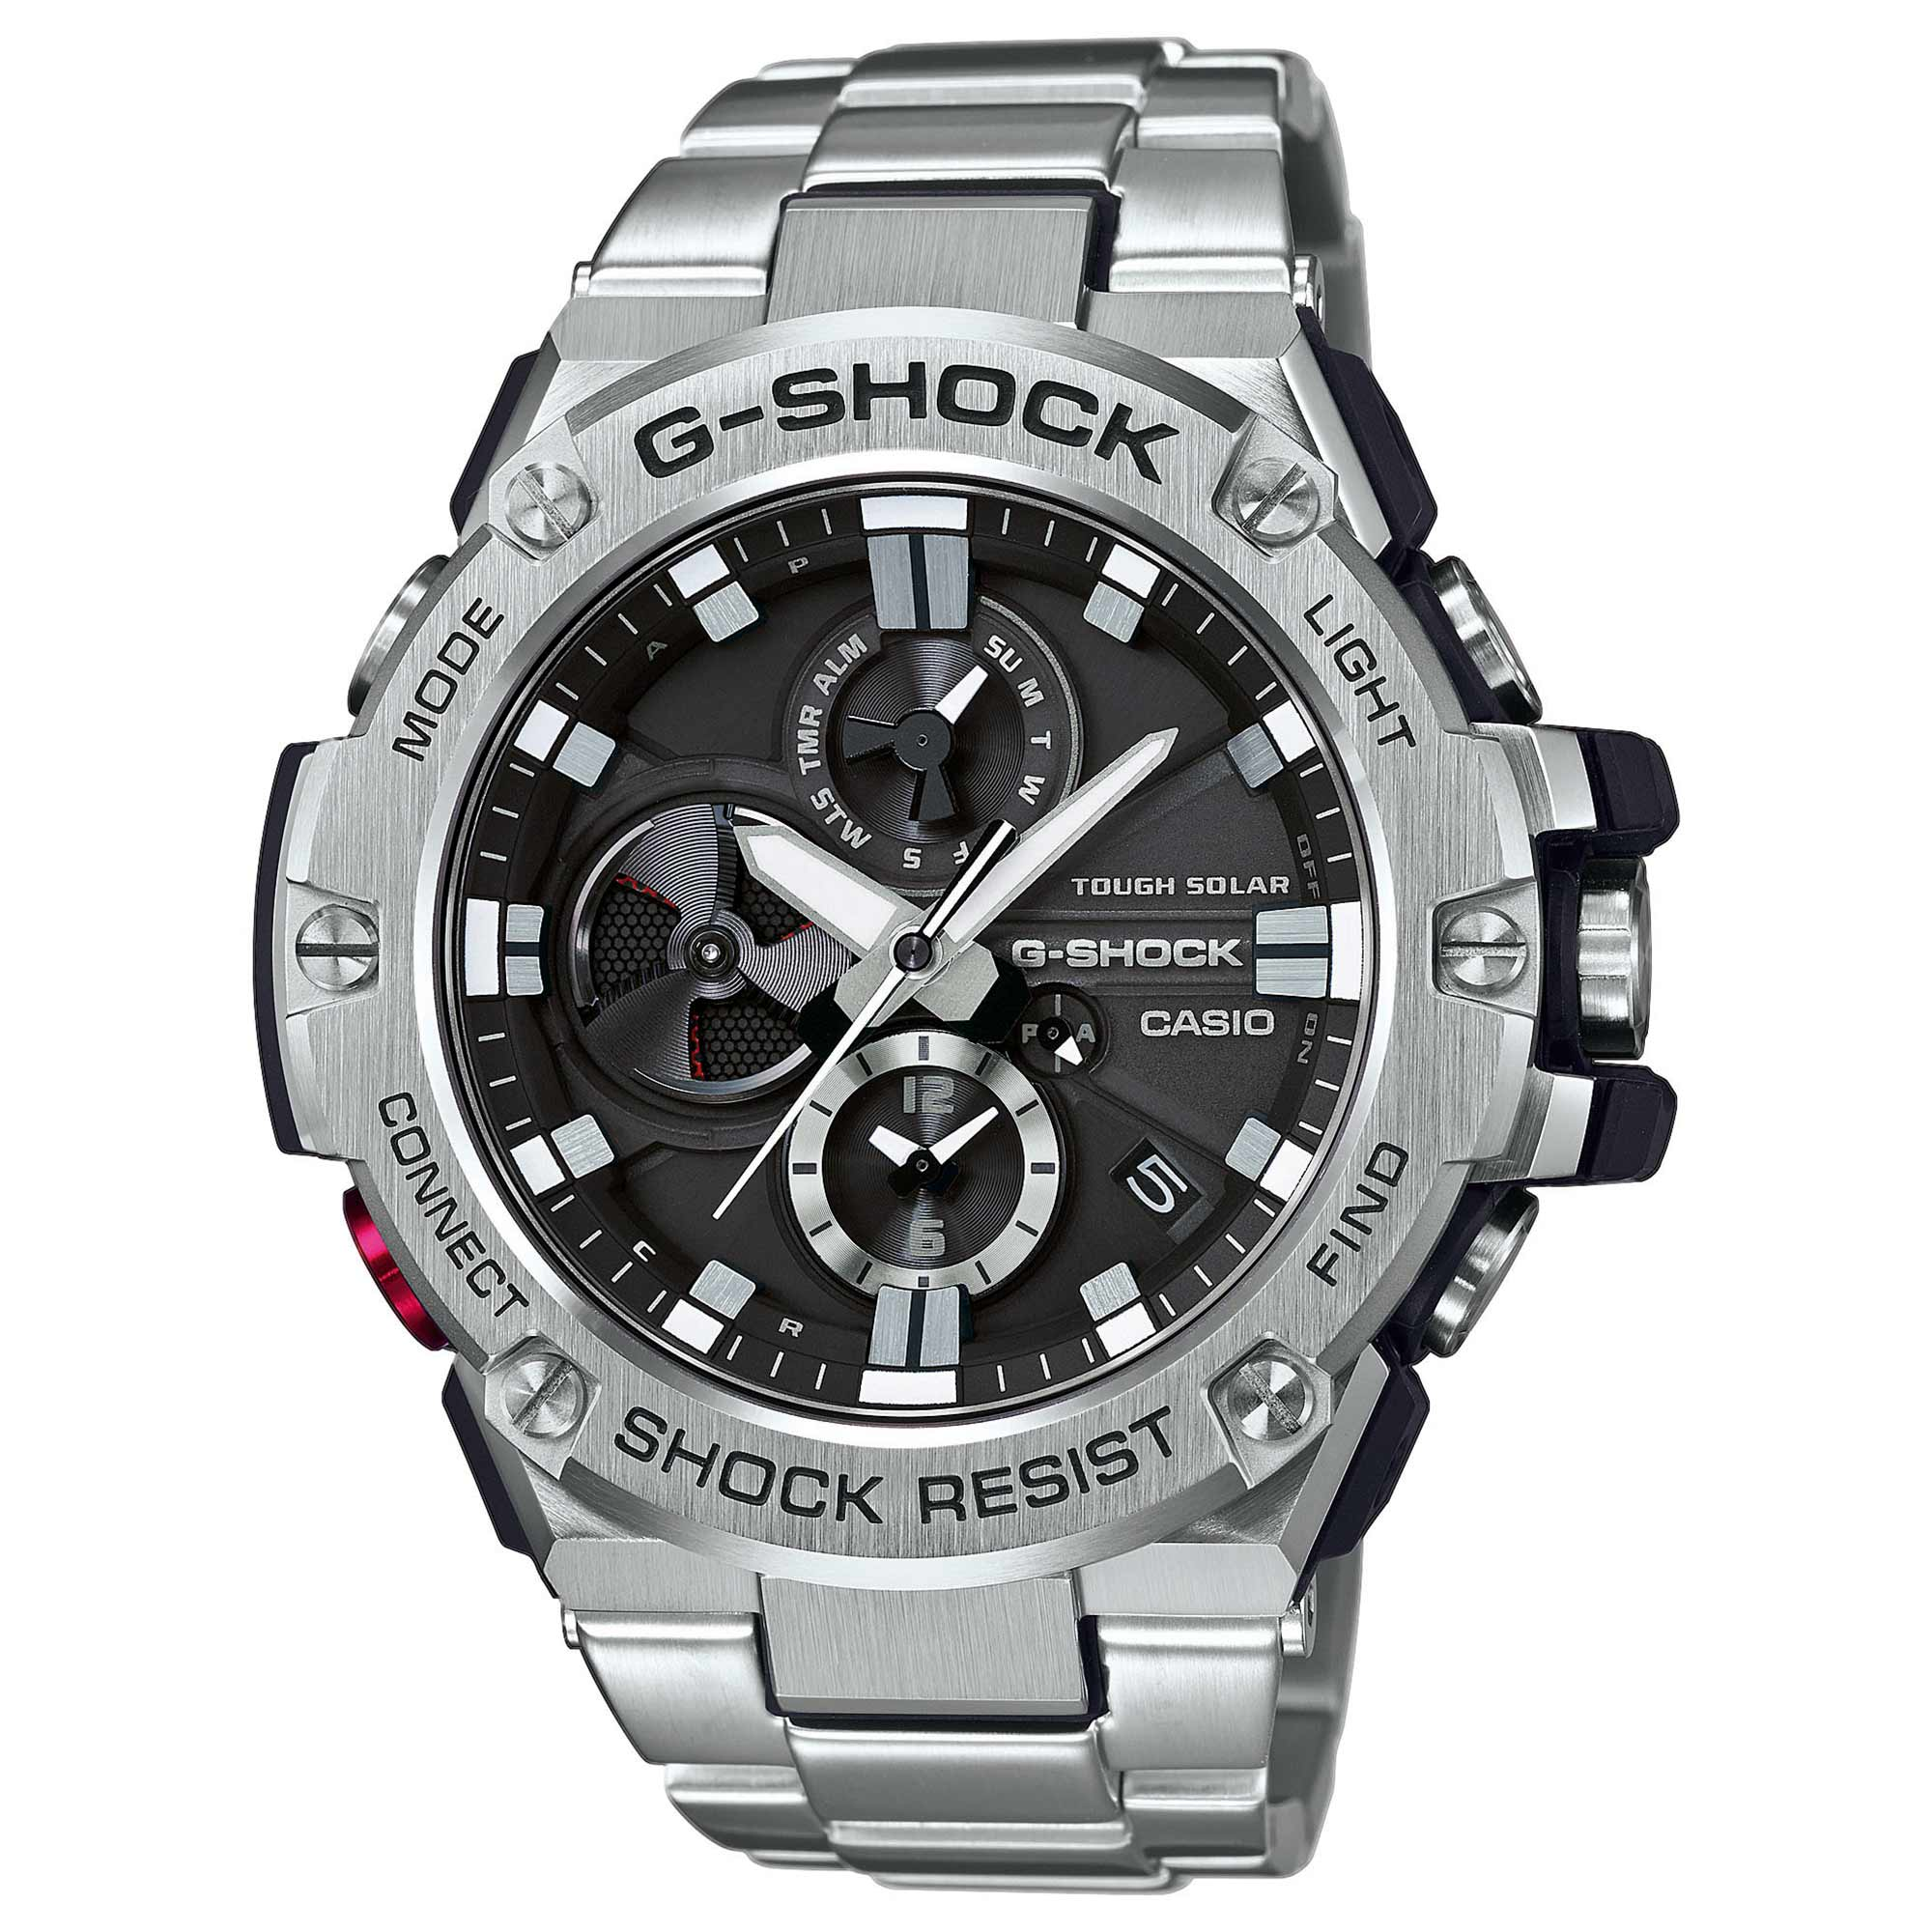 montre casio numero telephone ecran feu d'artifice